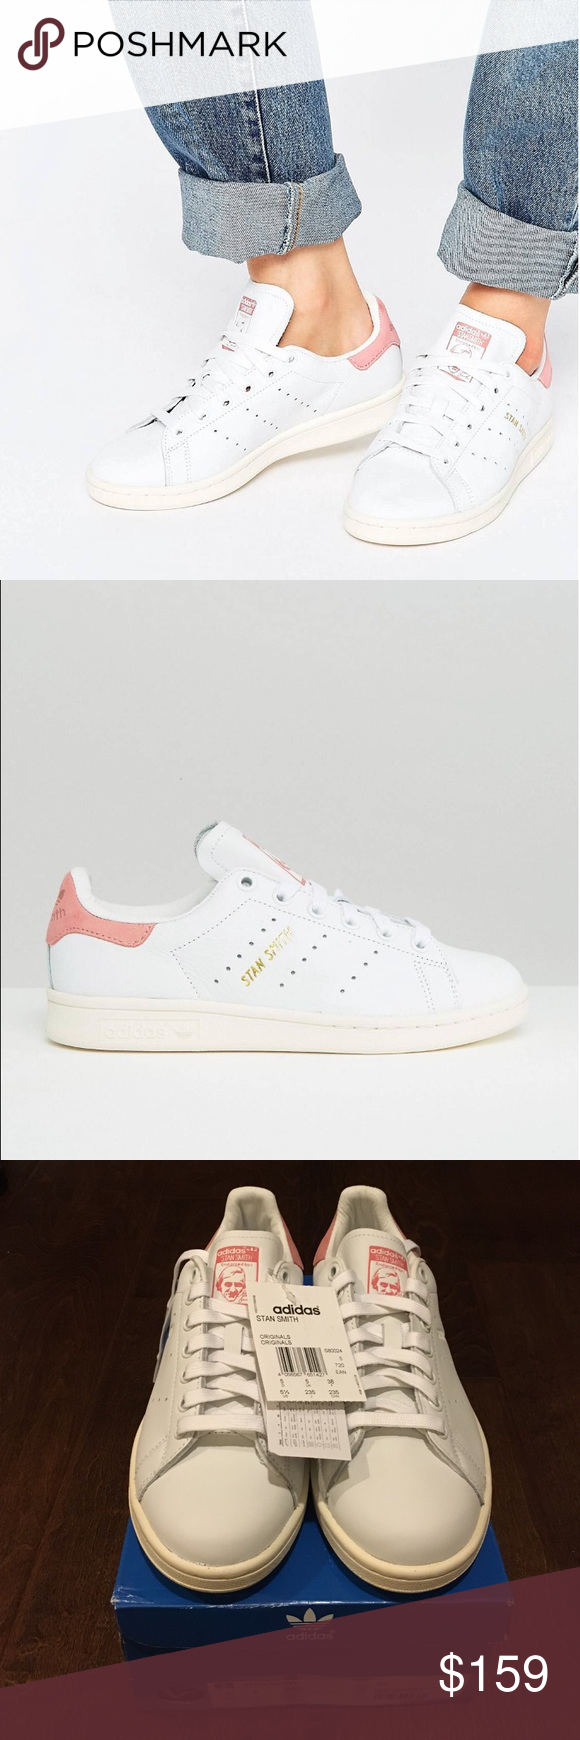 68e21c46b9ae Adidas originals Stan Smith light baby pink suede Brand new! 100%  authentic. White